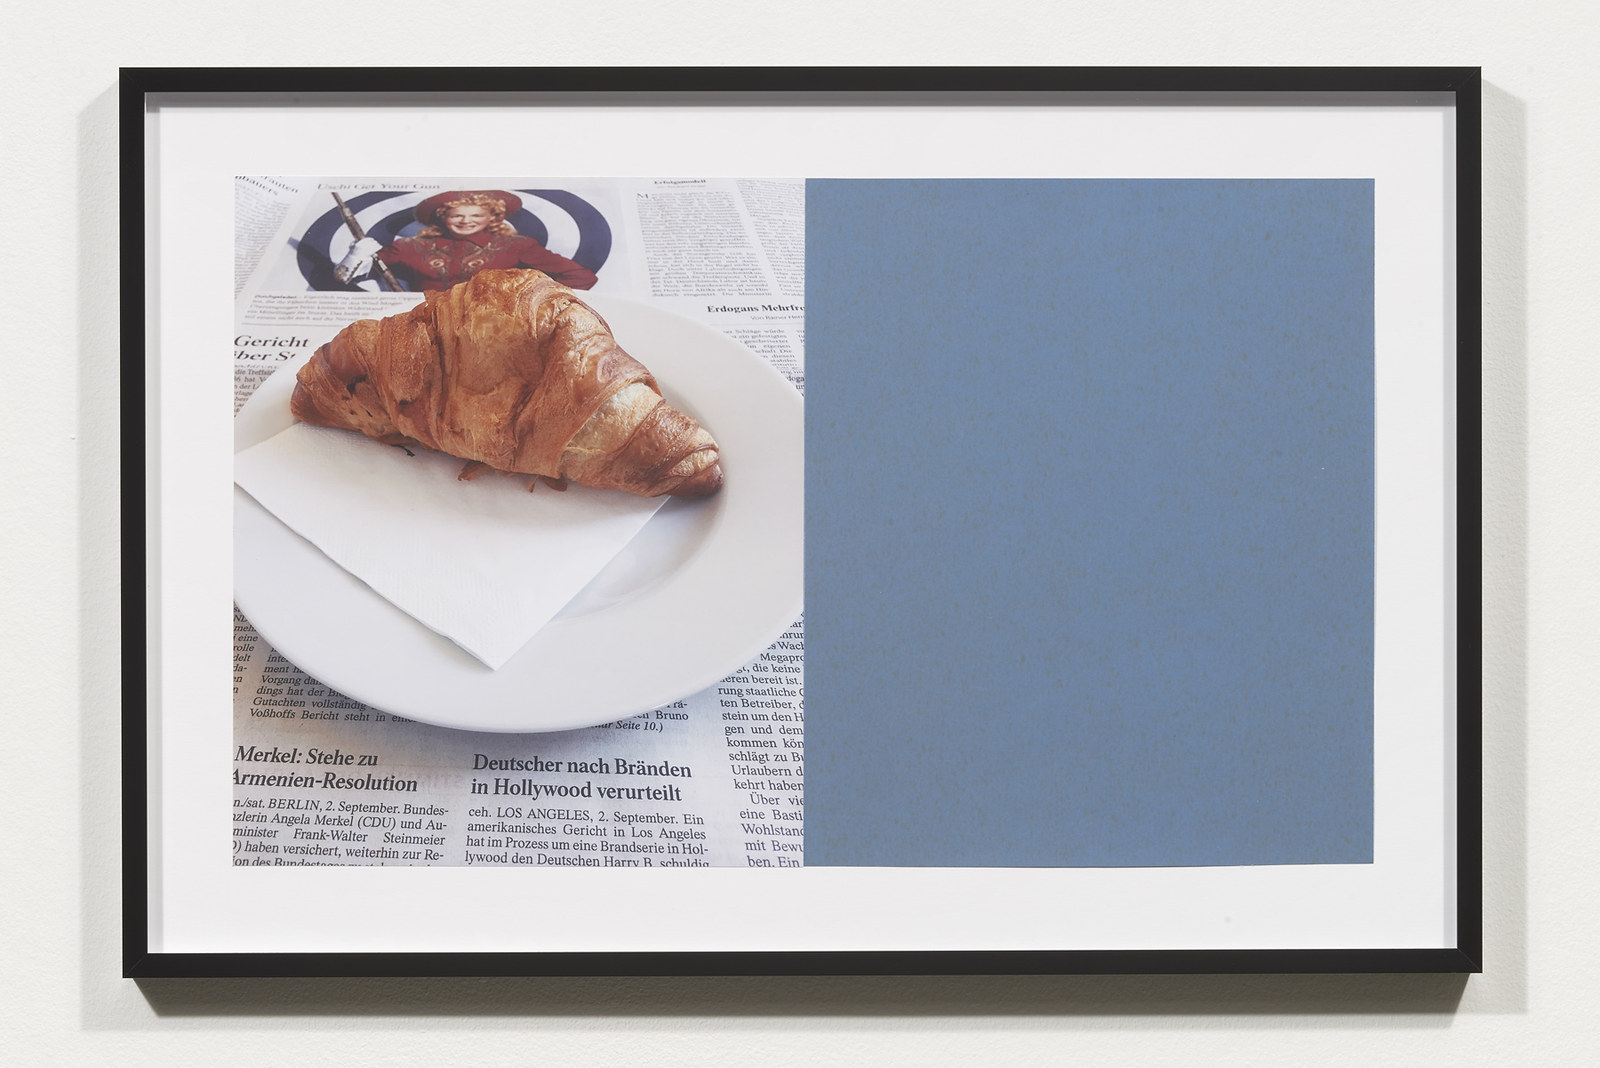 Wermers_Croissants & Architecture #5, 2016_C-print, sandpaper sheet, framed_14 3_8 x 21 1_2 in_NW00046PG